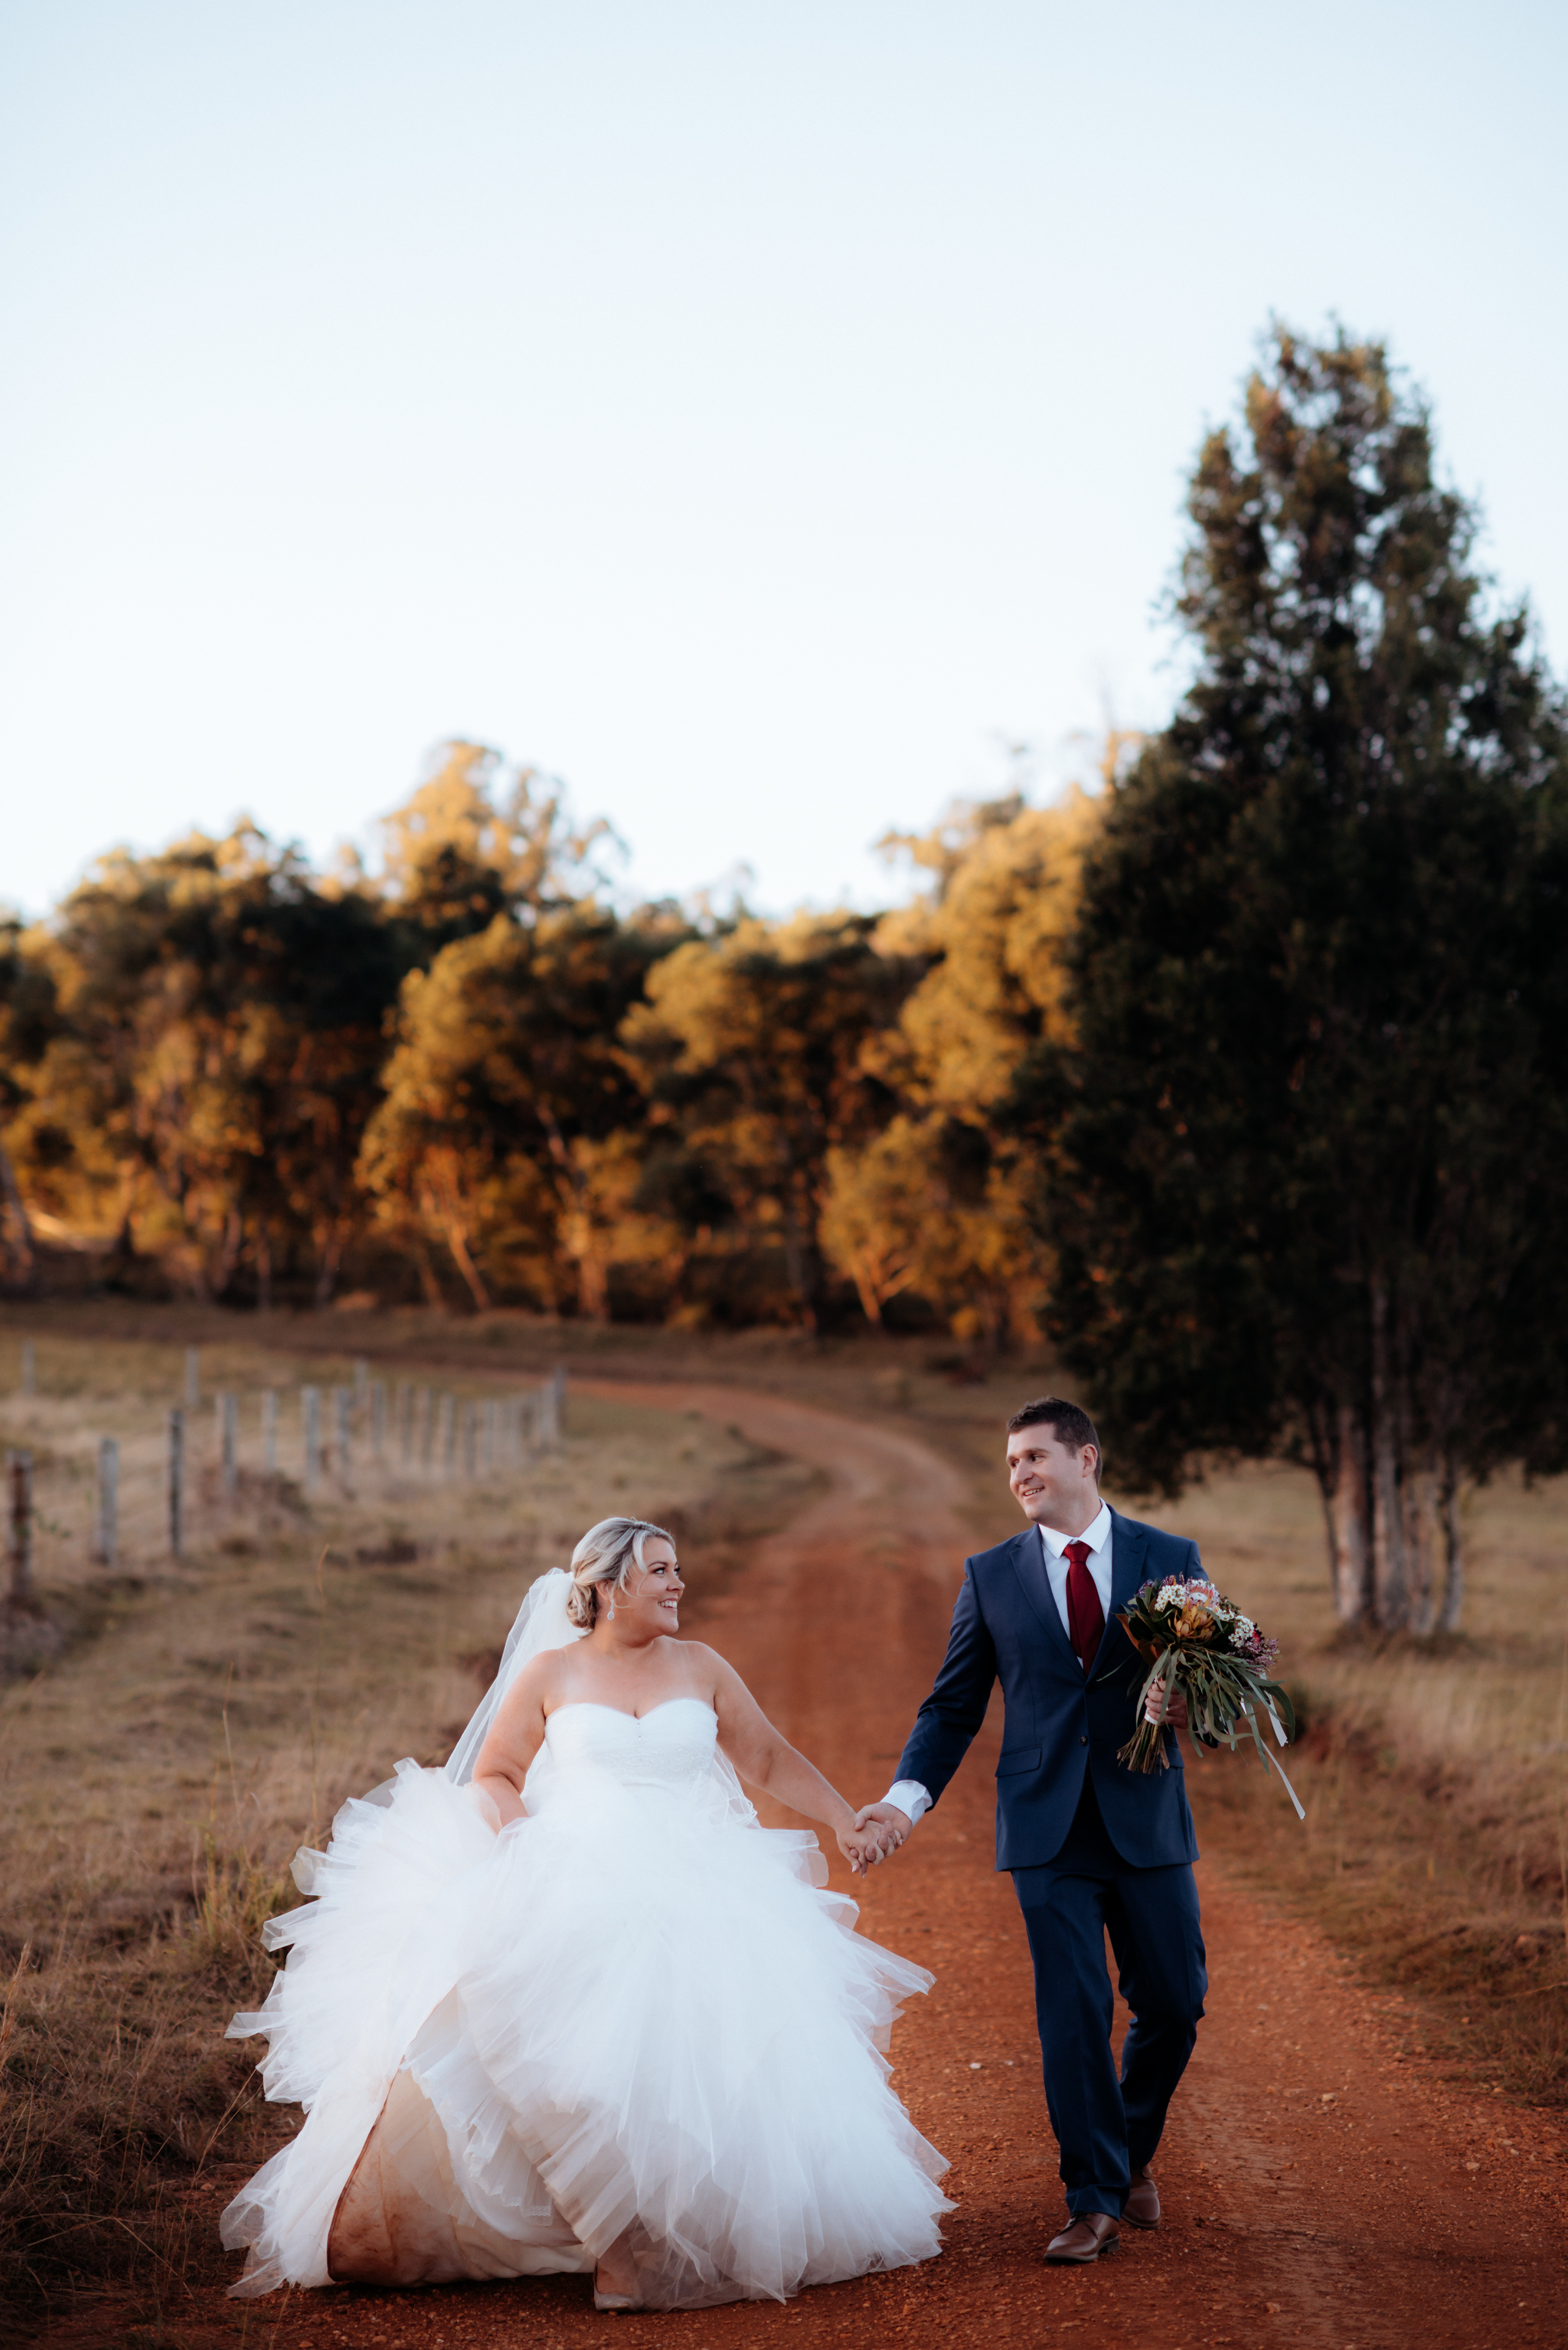 ♡ - Happy Anniversary you lovely people! My favourite memories are you helping my bridesmaids do up my dress 🤦‍♀️, helping calm me in the madness and then squashing my ridiculous dress into your car and having such a fun time! The red dirt was worth every bit!! 😍~ Meagan & Scott • Ocean View Estates Winery & Restaurant